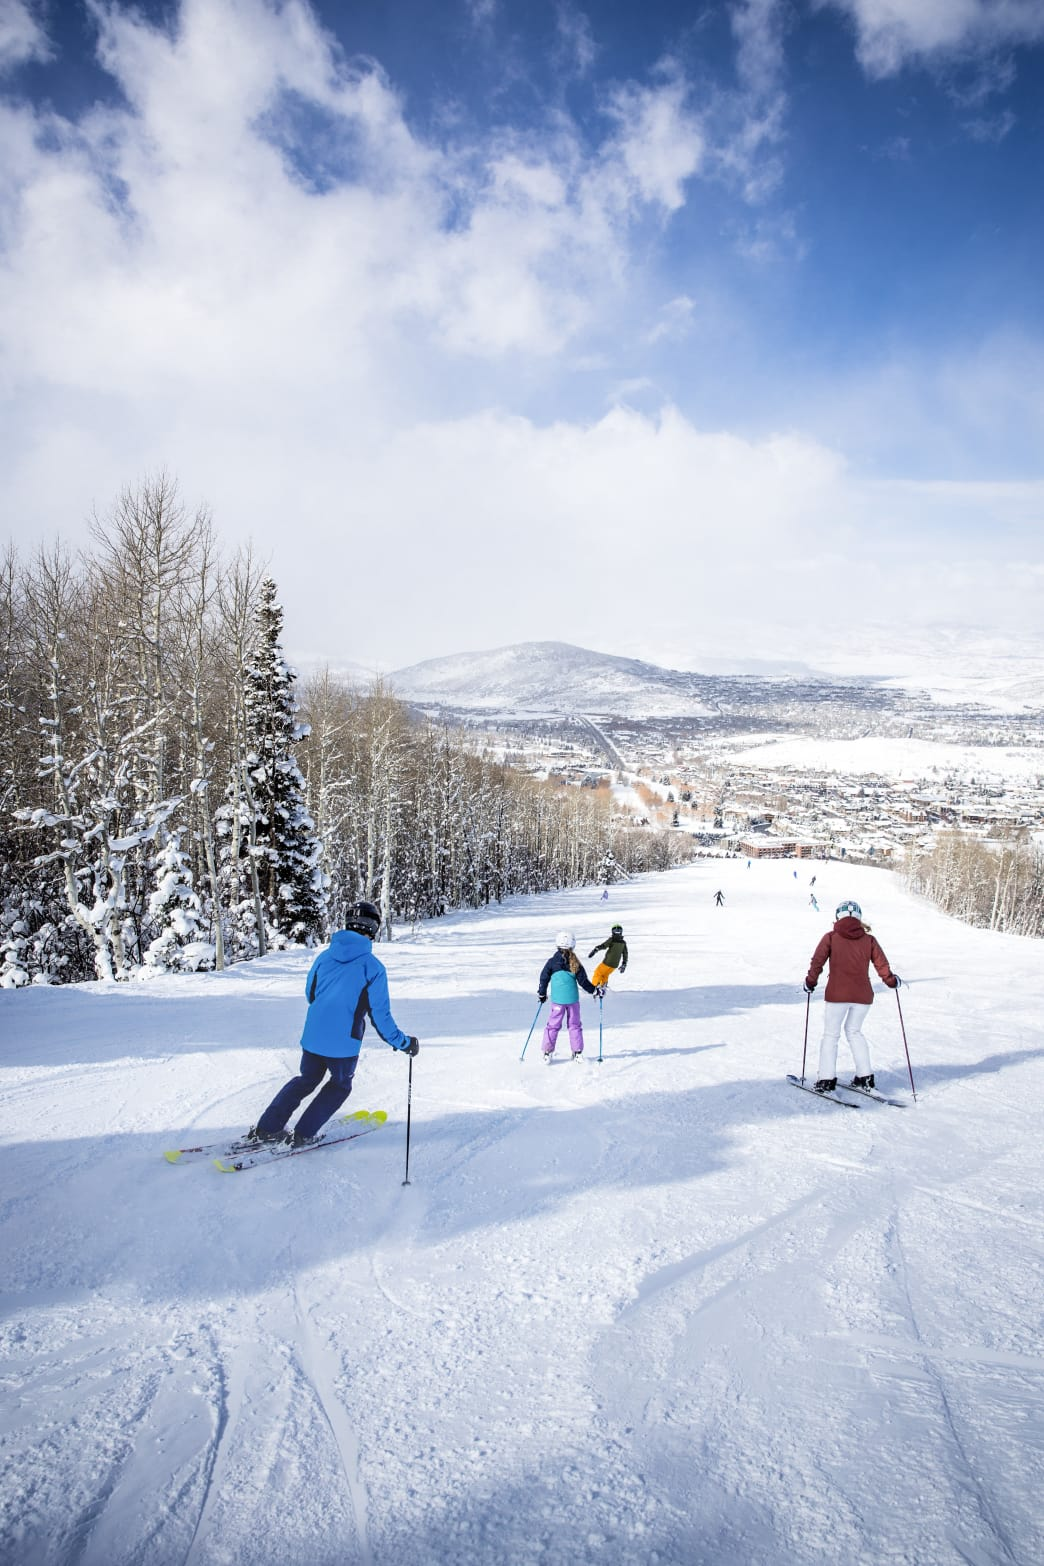 View of wide runs at Park City